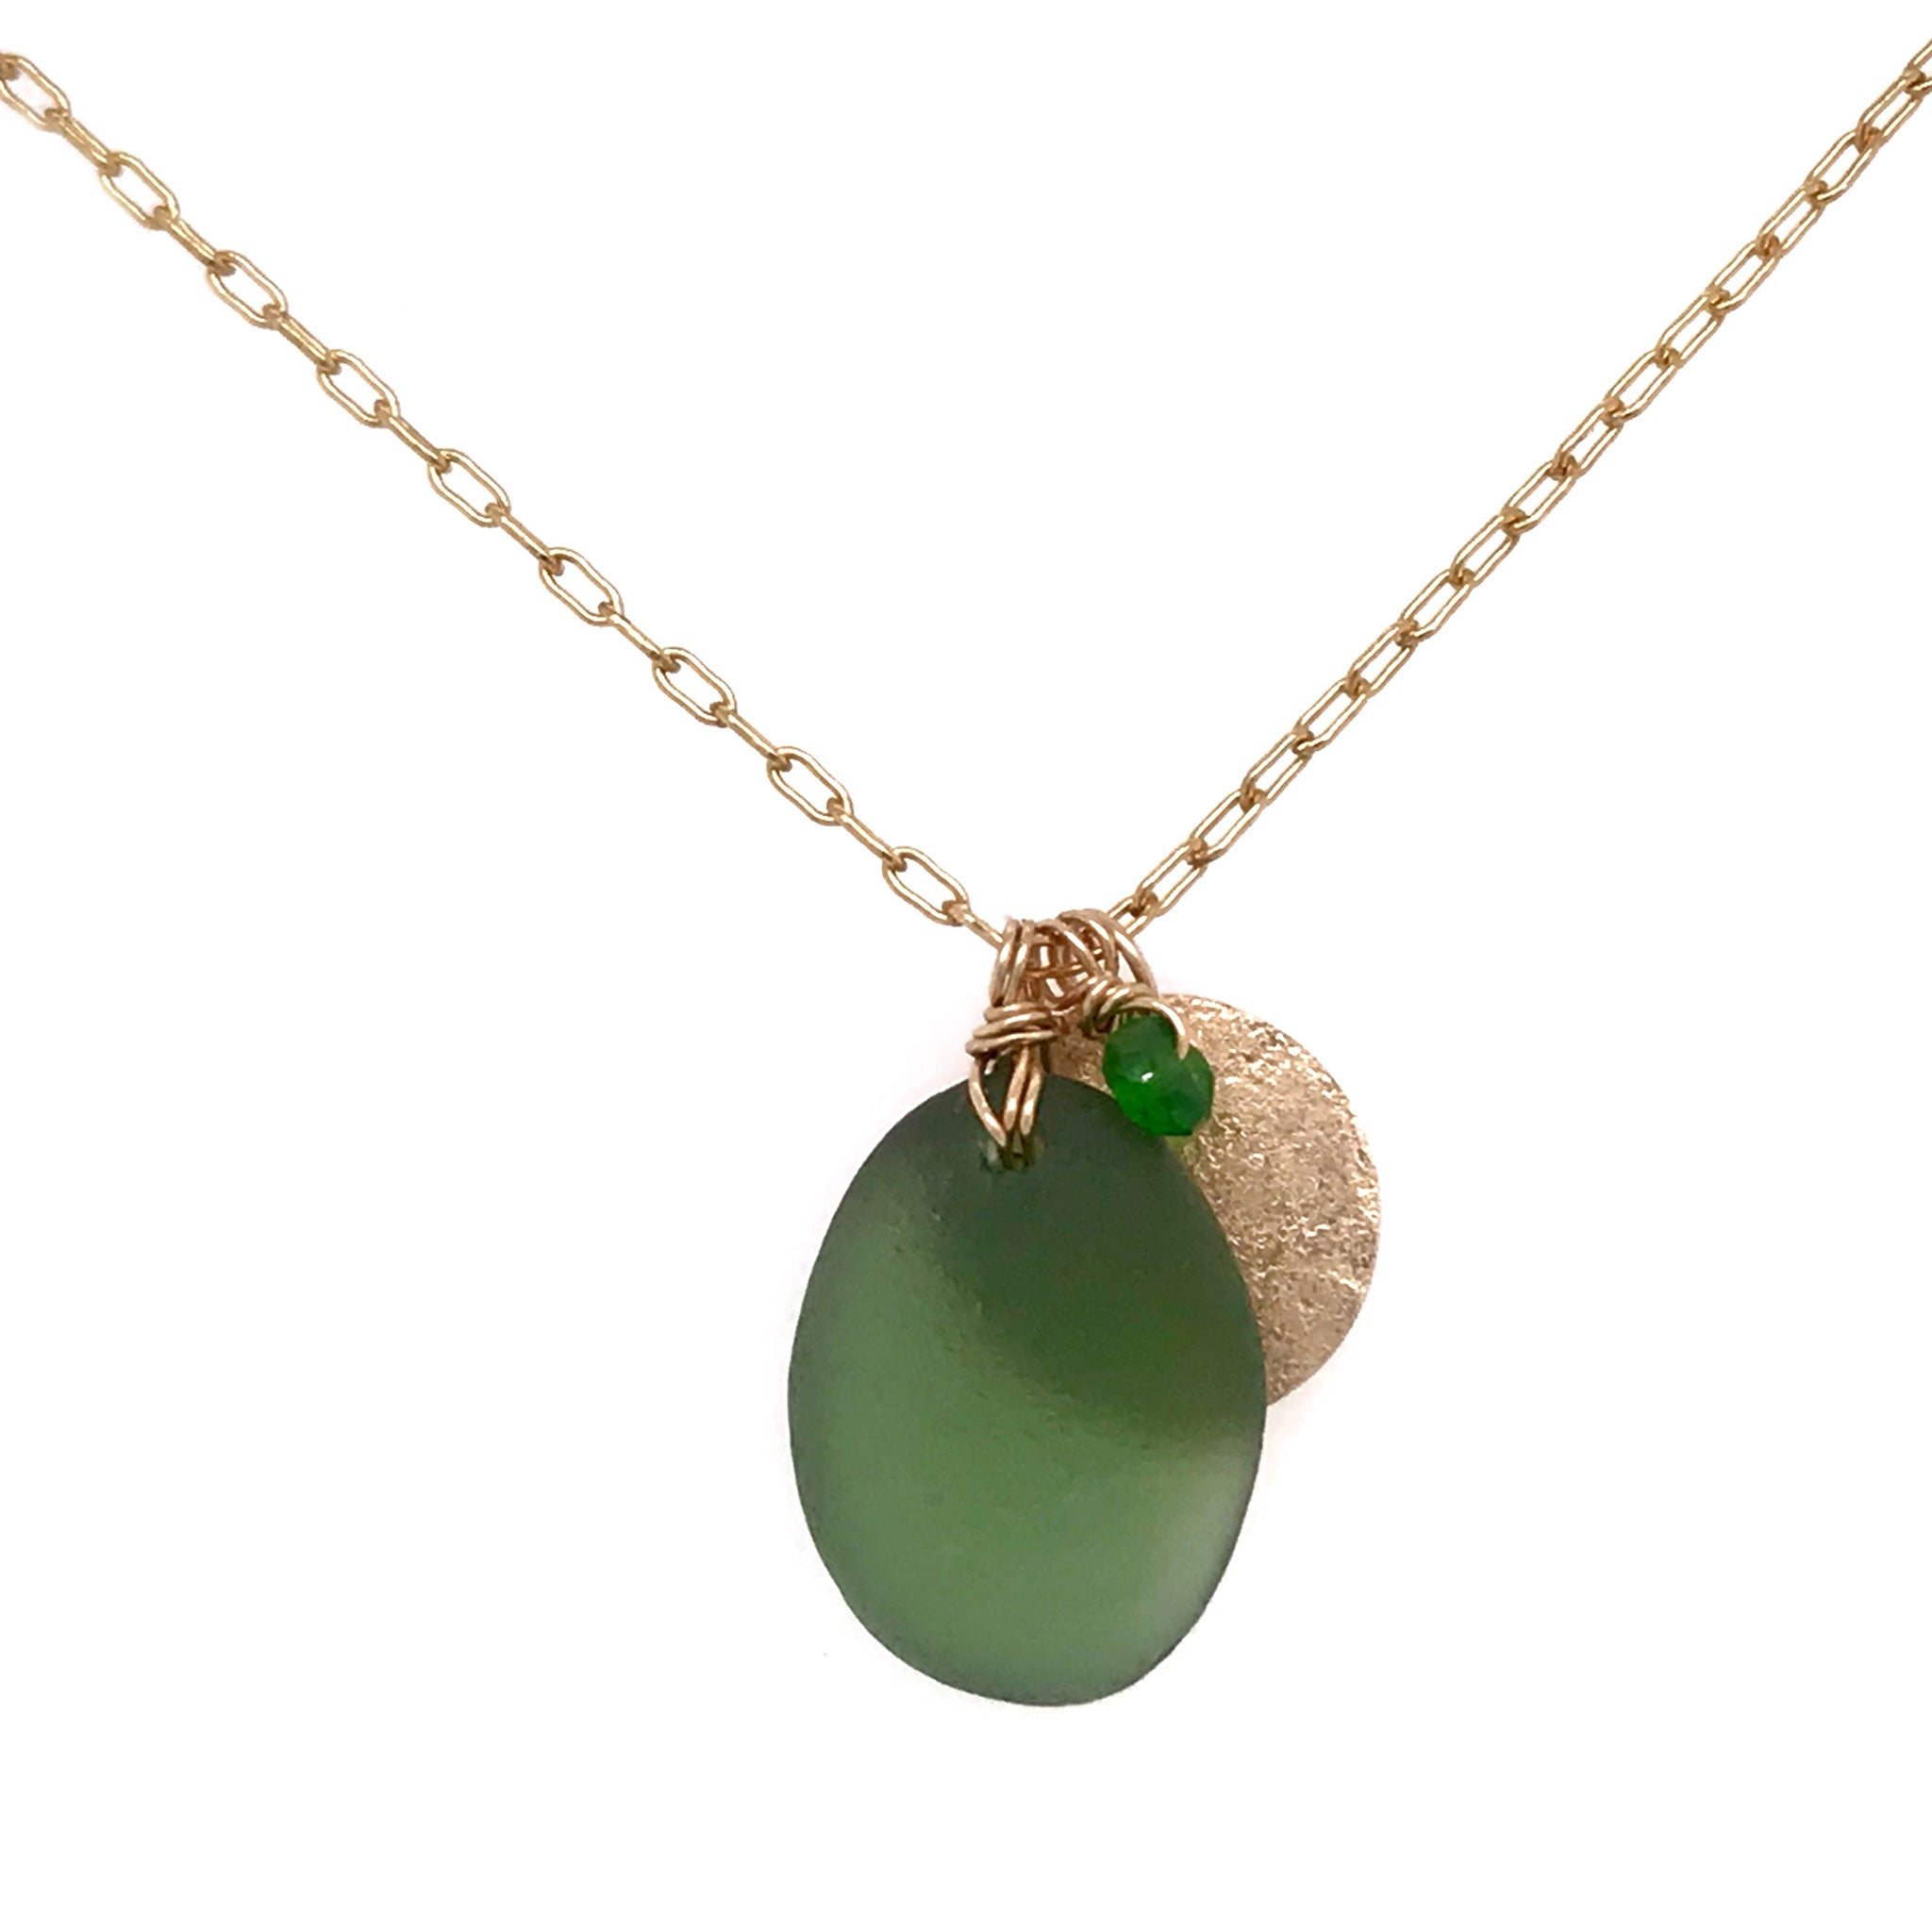 gold disc charm with green seaglass necklace kriket broadhurst jewellery